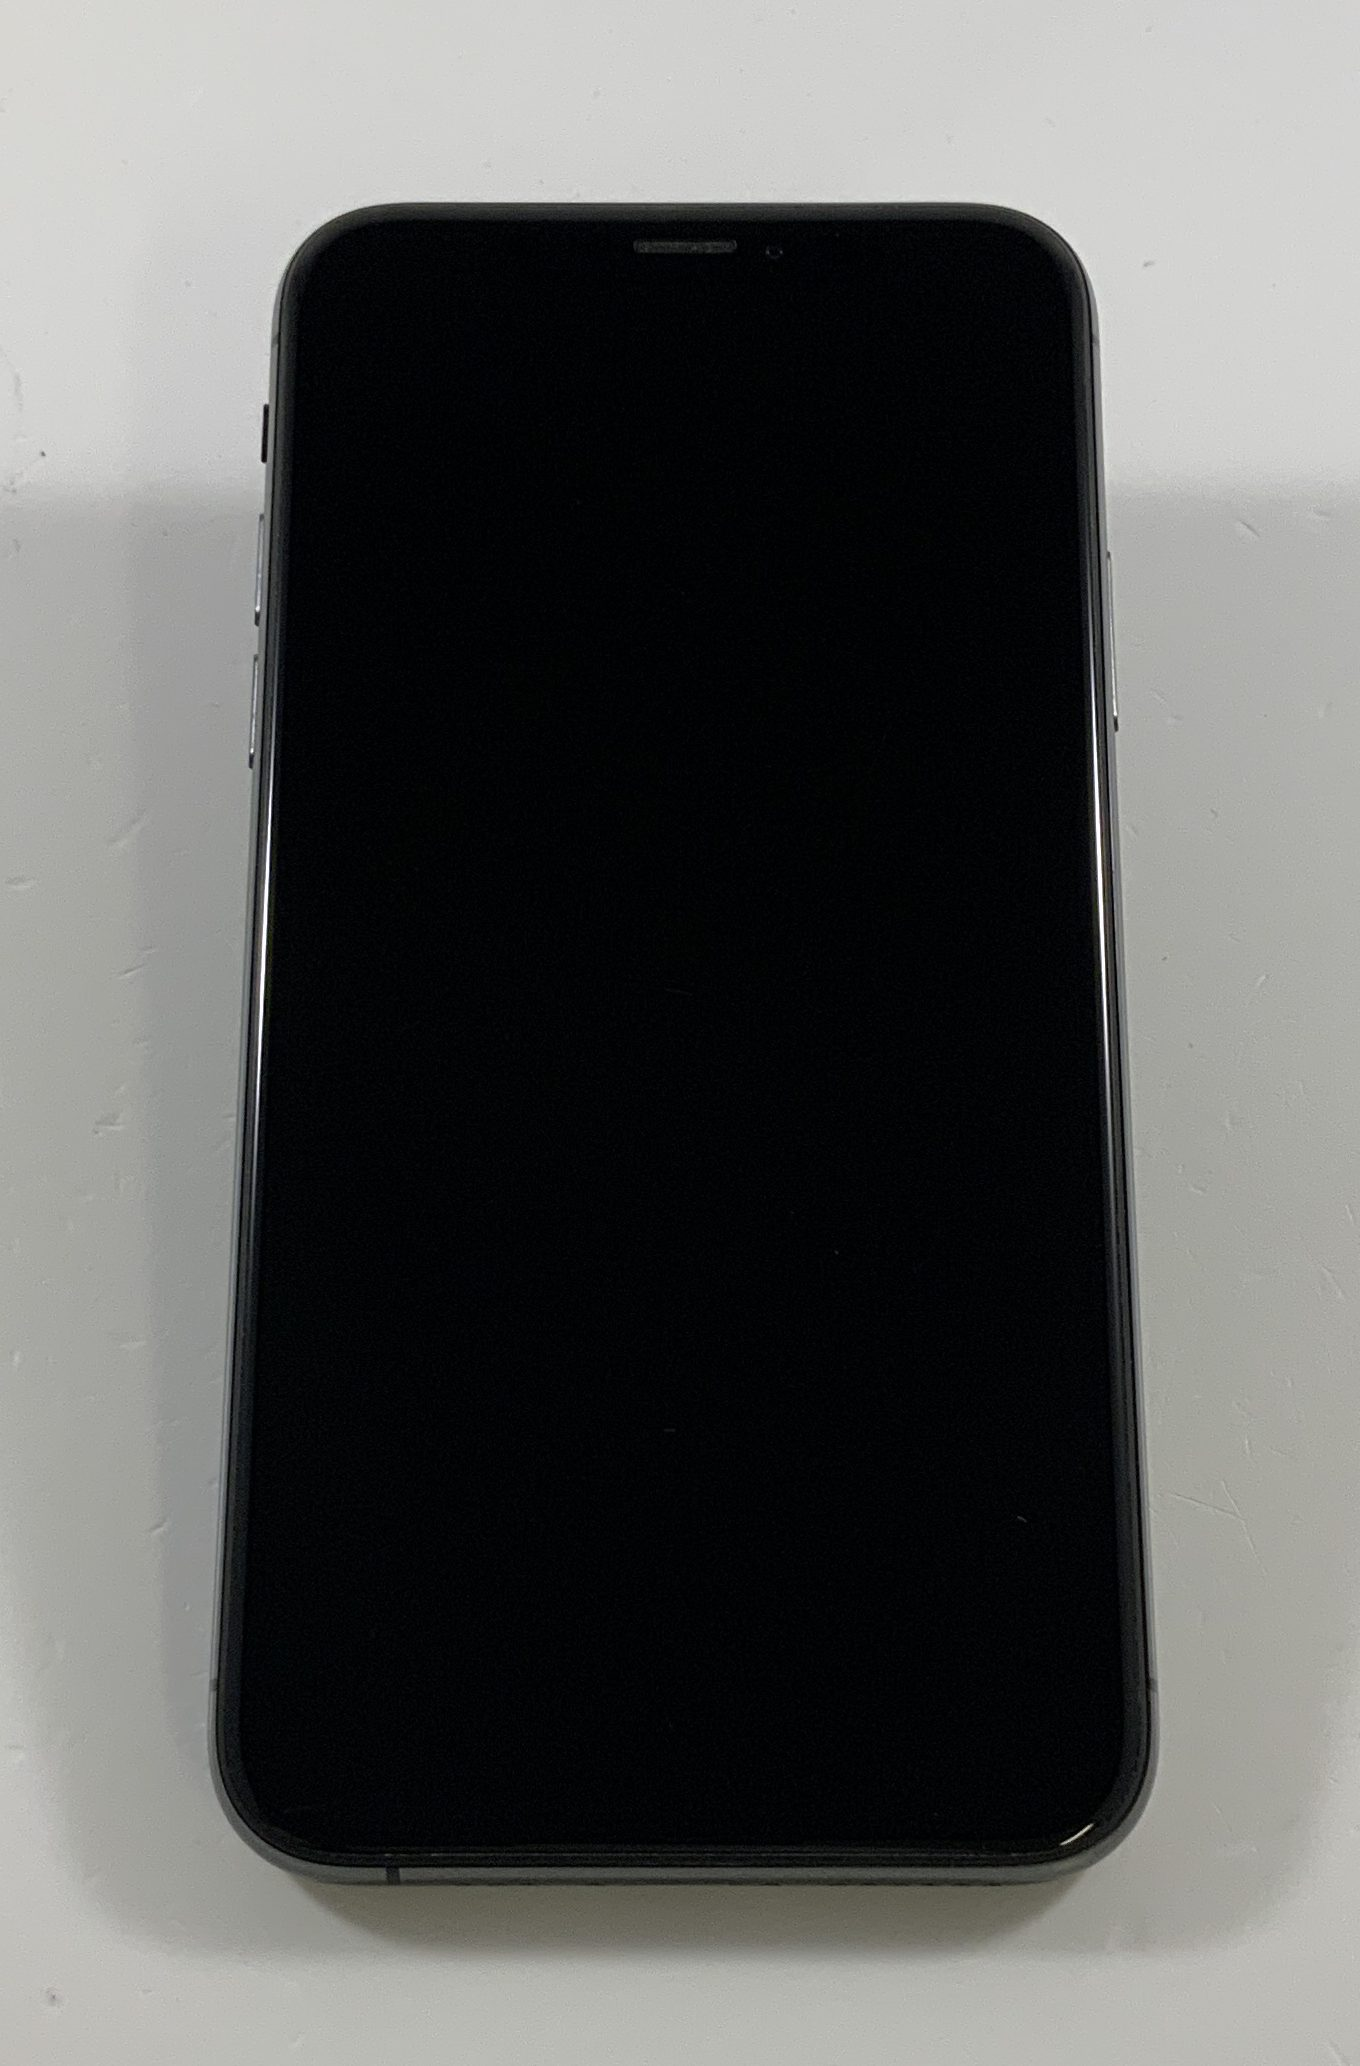 iPhone XS 64GB, 64GB, Space Gray, image 1